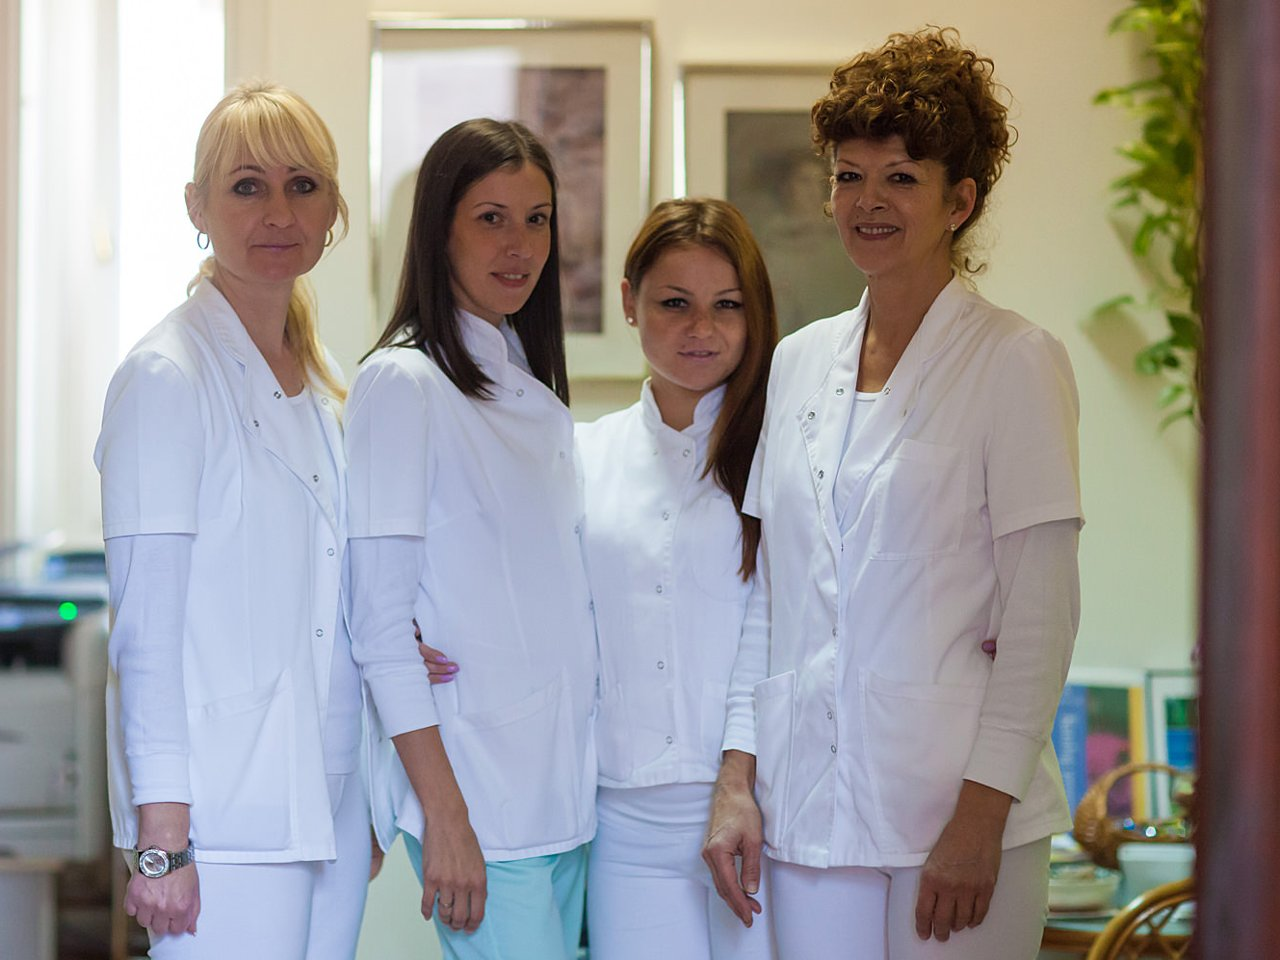 AKUMED SURGERY FOR ACUPUNCTURE THERAPY AND BIORESONANCE Specialist clinics Subotica - Photo 8